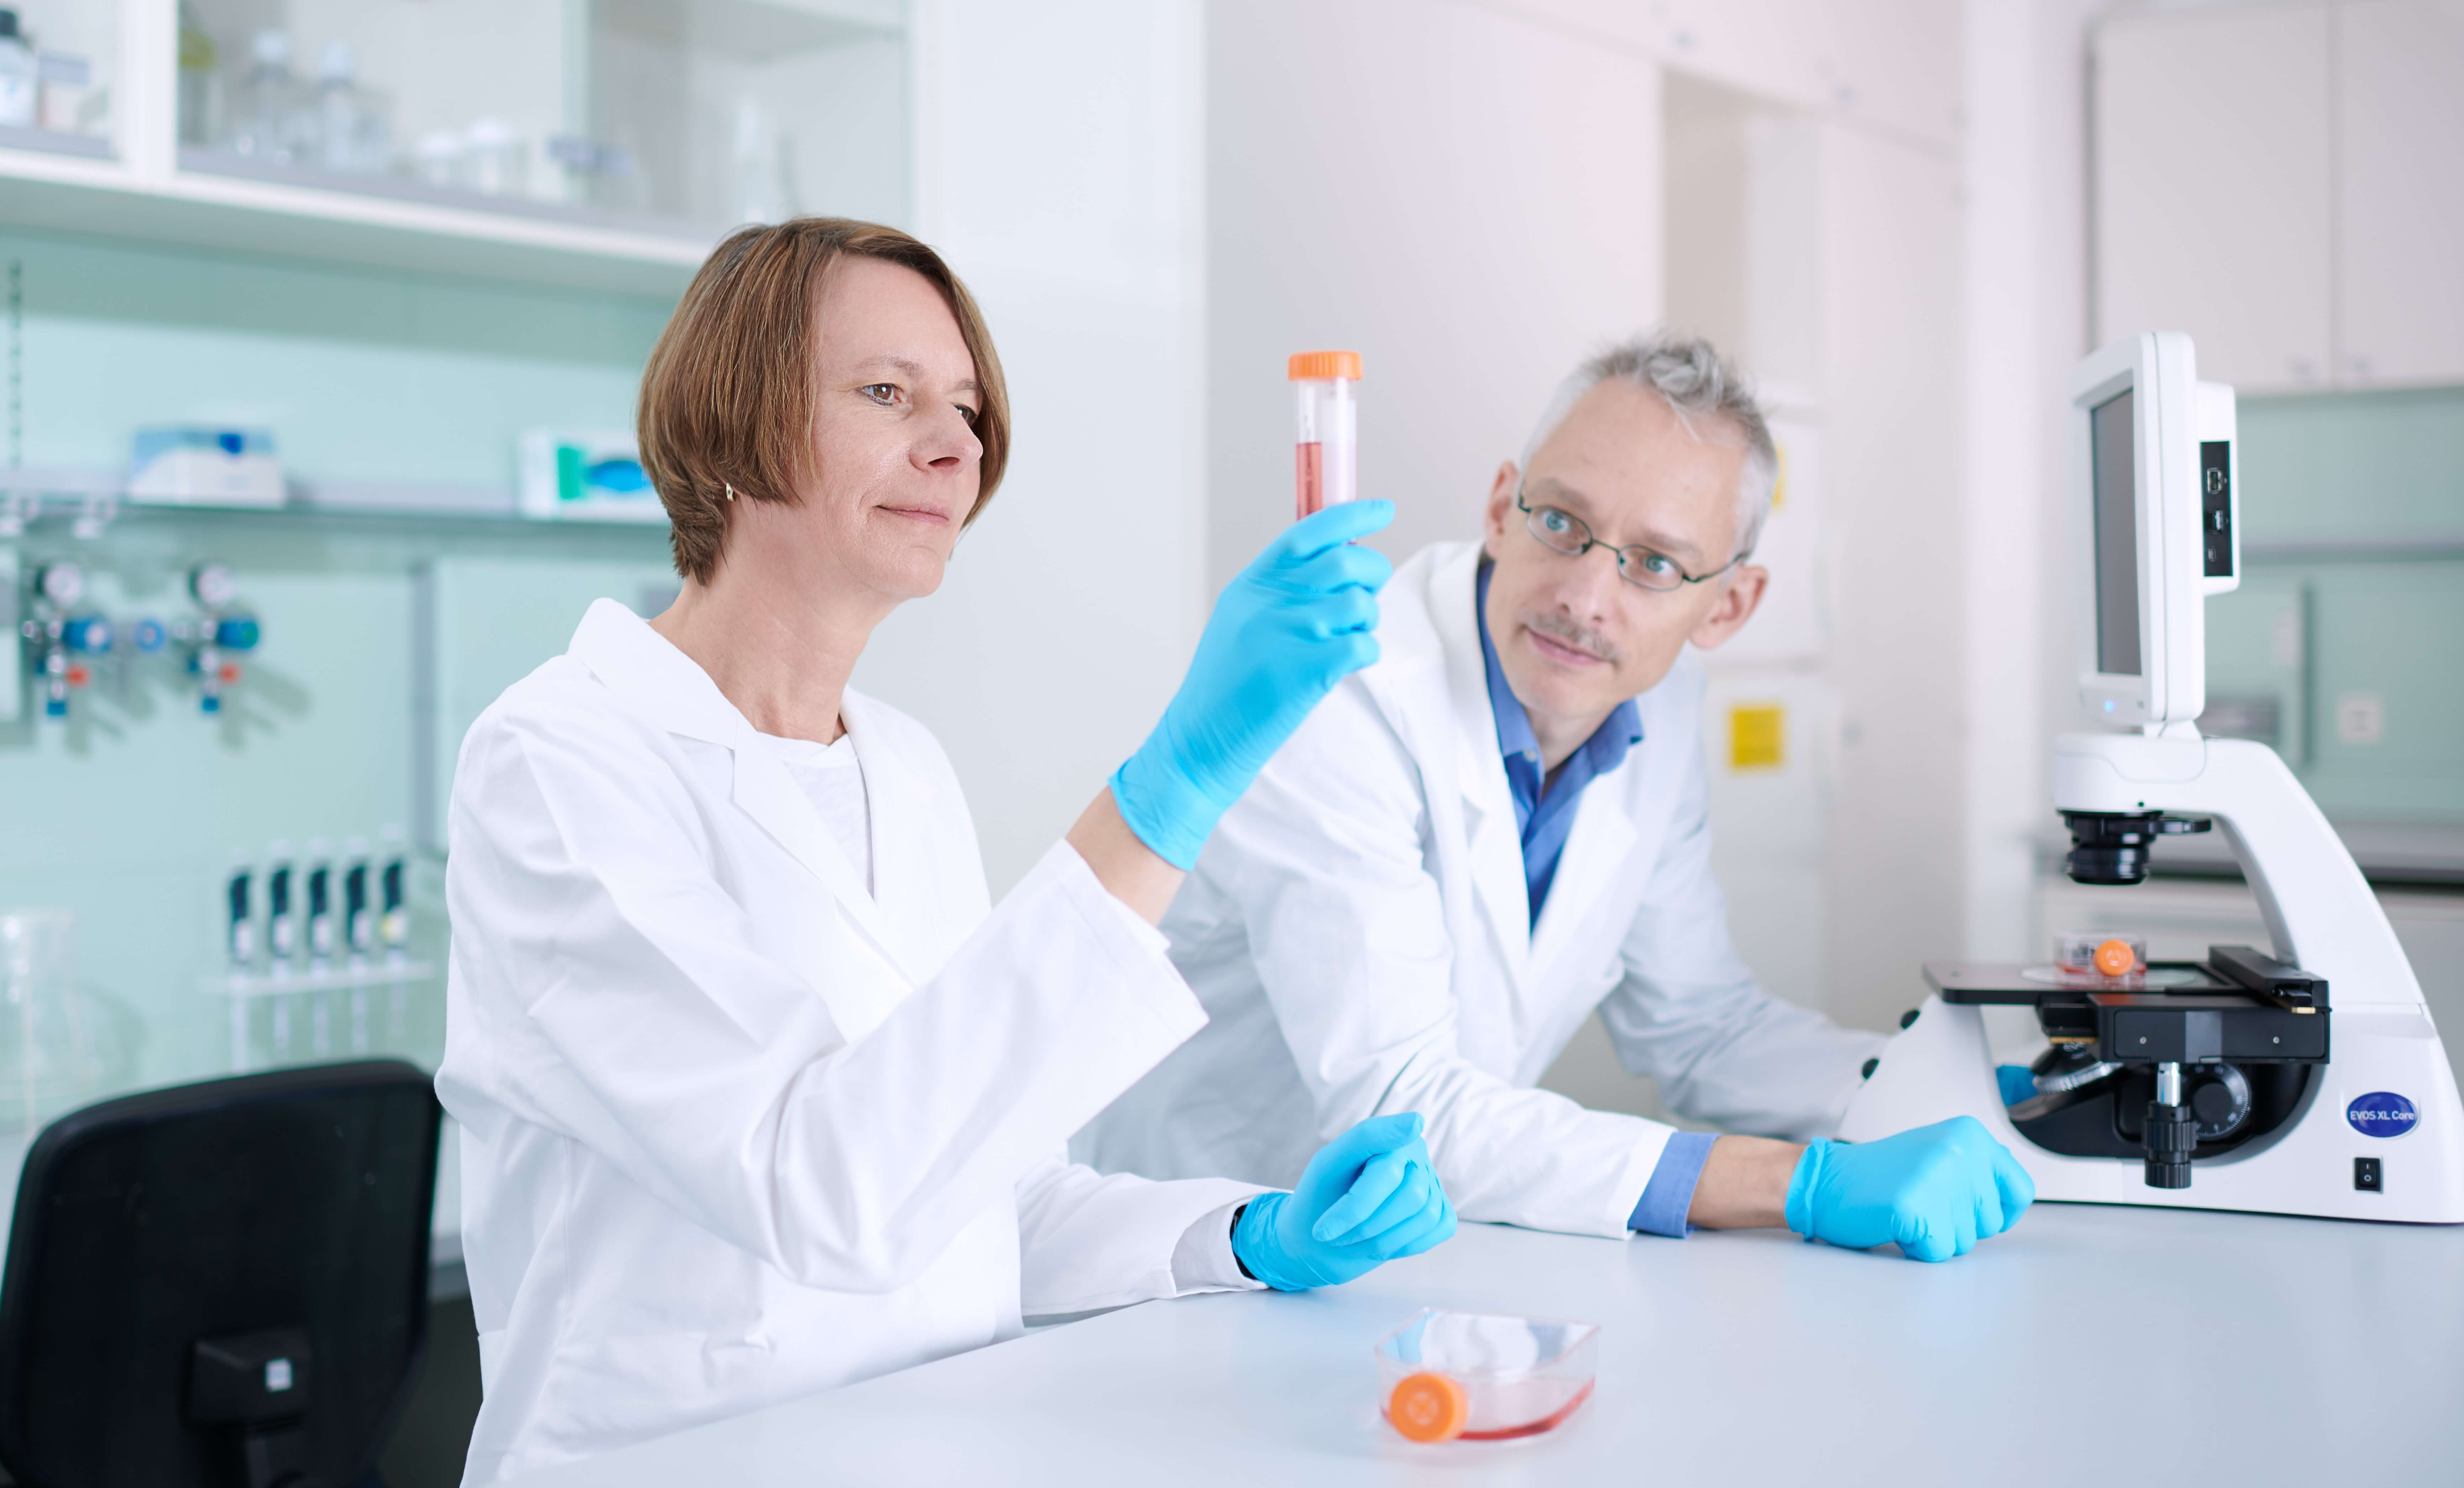 trenzyme's reliable and experienced scientific experts in the lab